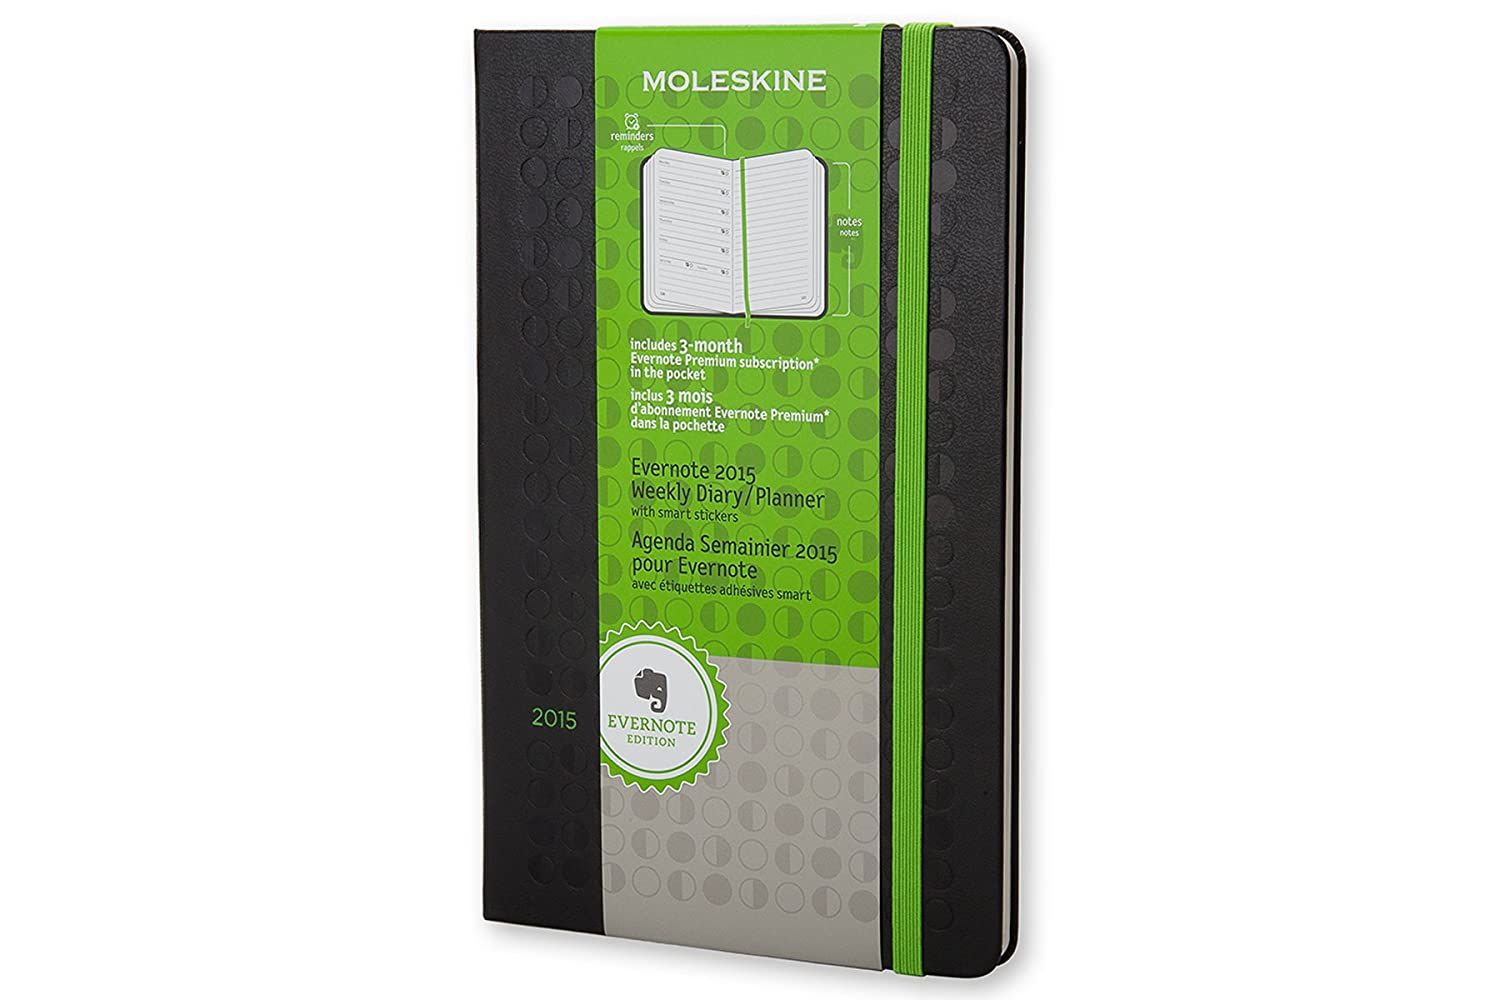 Moleskine 2015 Evernote Planner Weekly Notebook, 12M, Large, Black, Hard Cover (5 x 8.25)